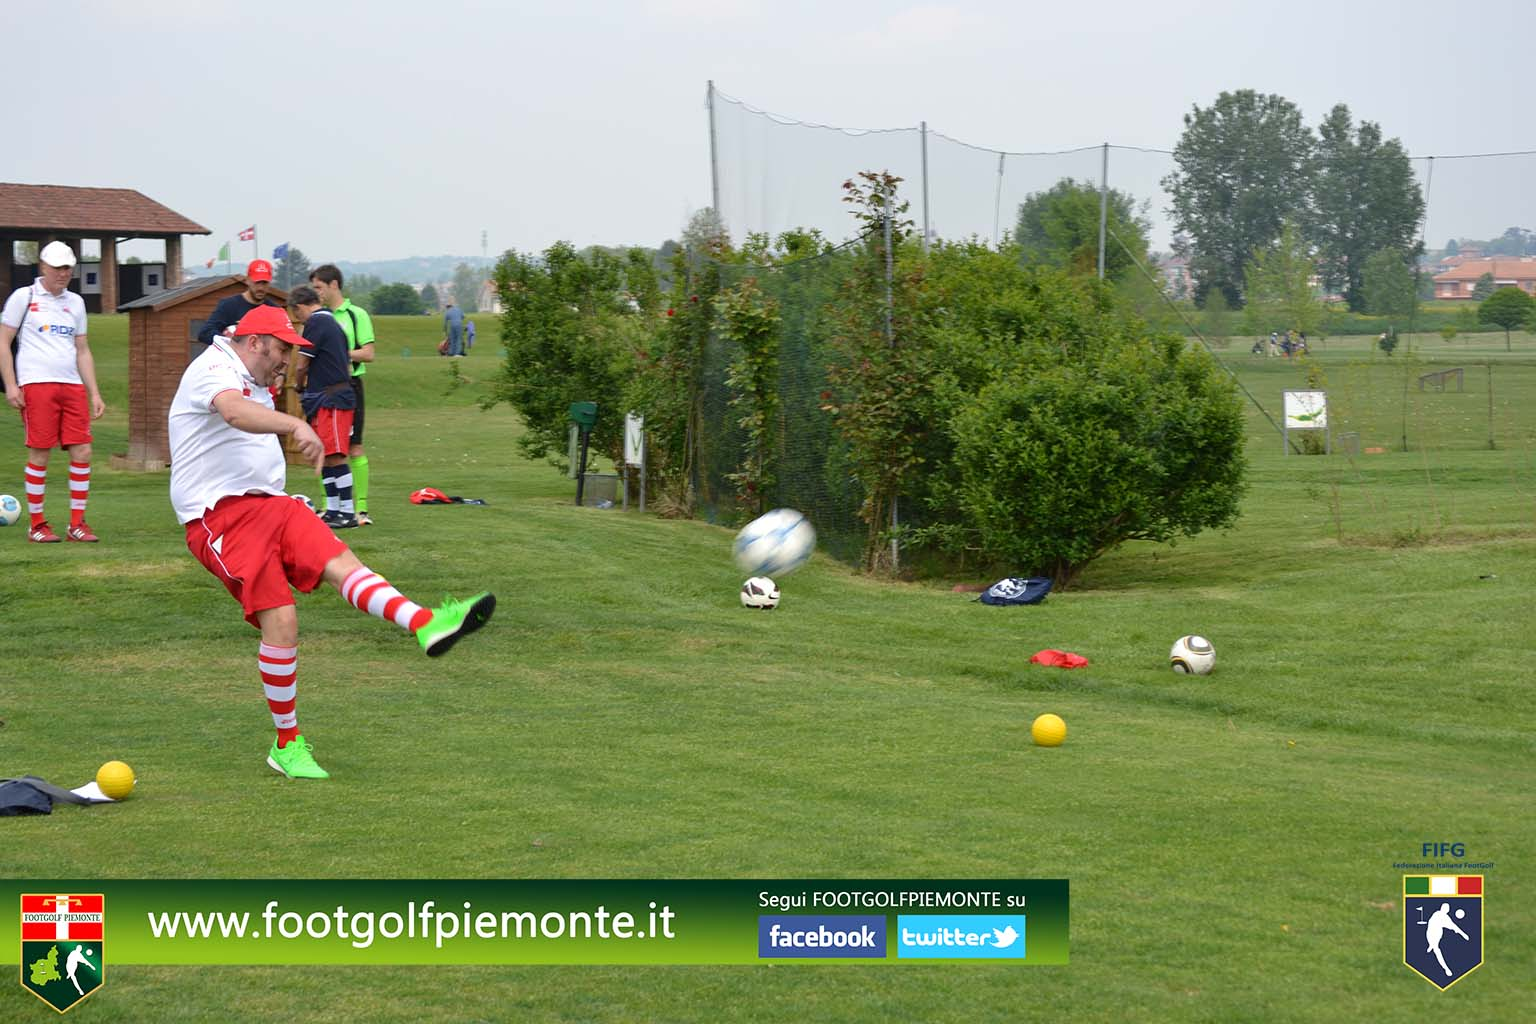 FOTO 9 Regions' Cup Footgolf Piemonte 2016 Golf Città di Asti (At) 30apr16-10